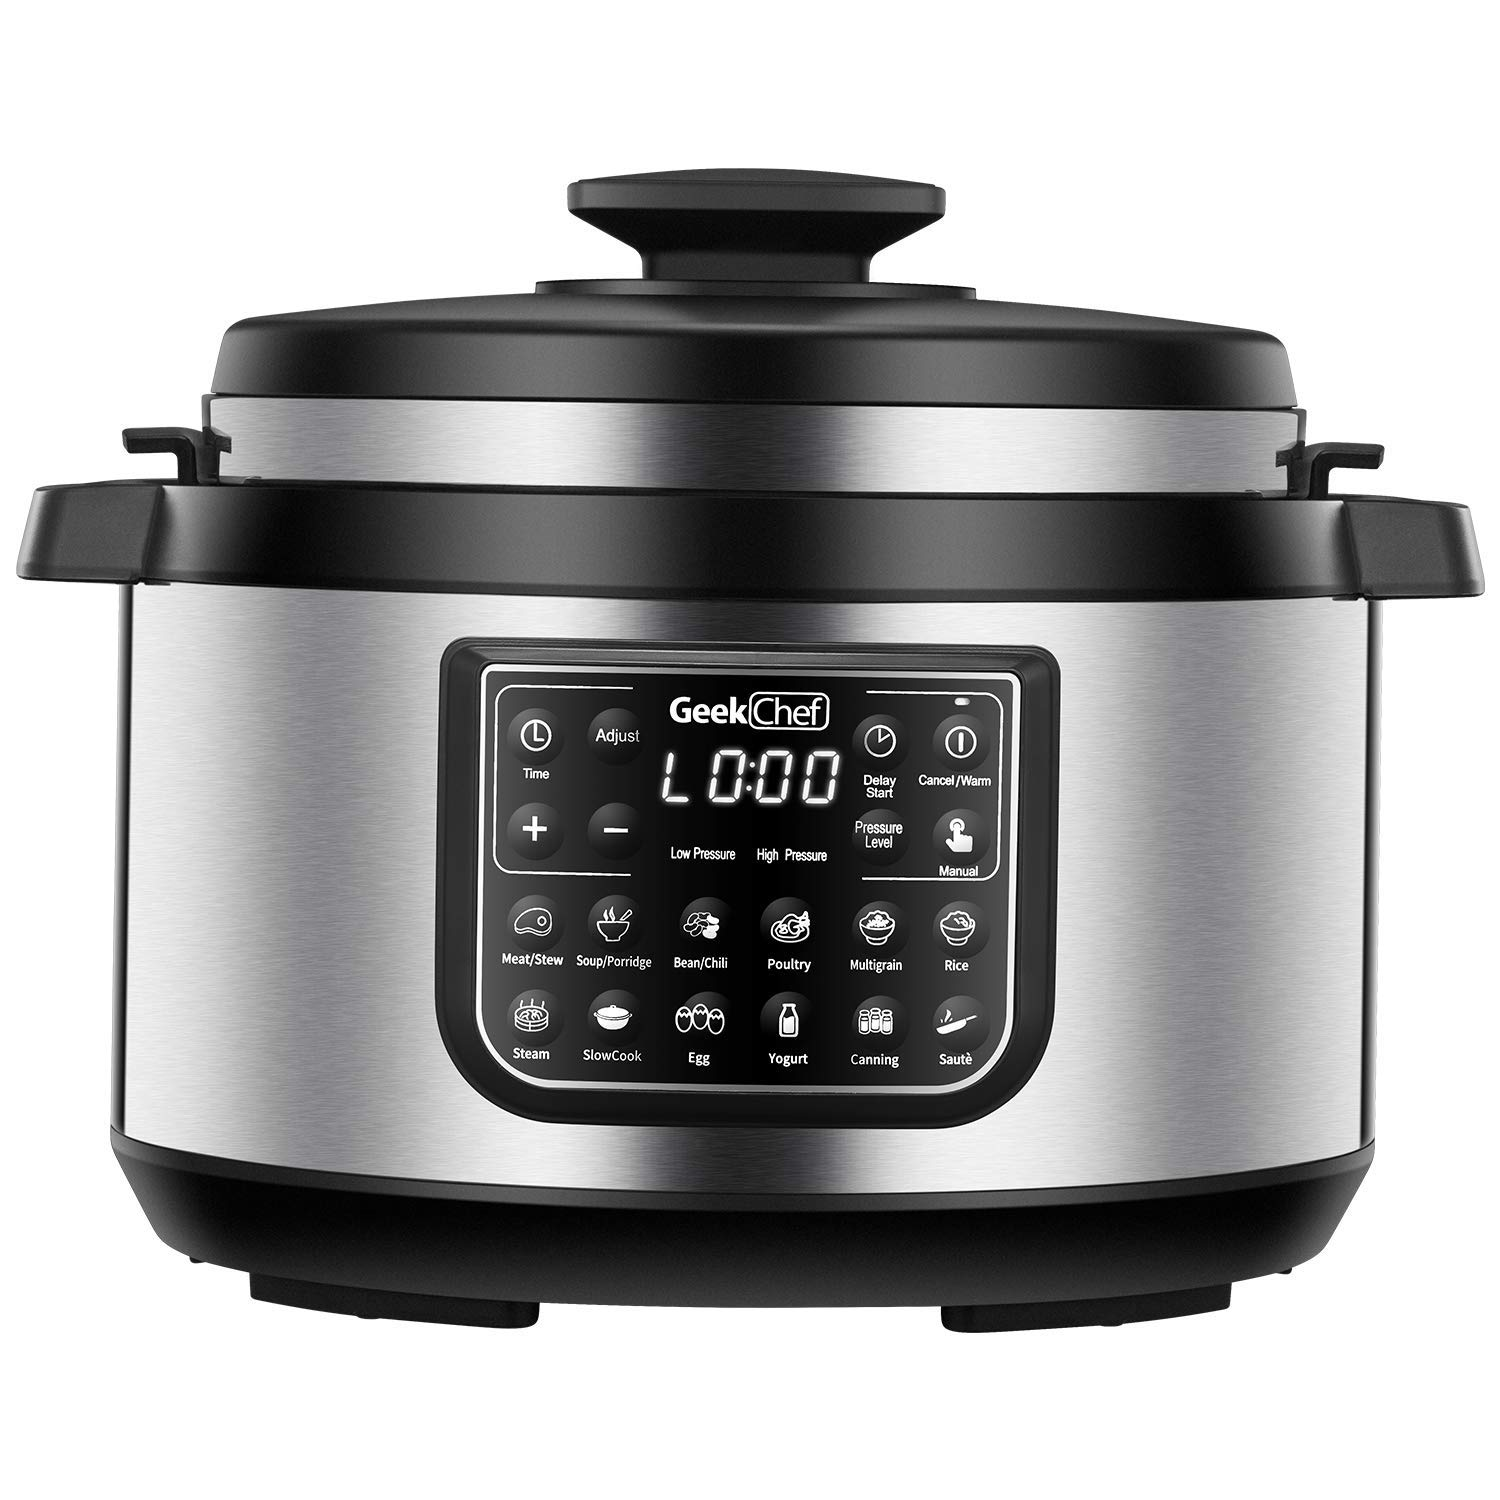 Geek Chef 8 Qt 12-in-i Multiuse Programmable Electric Pressure Cooker Oval, Slow Cooker, Rice Cooker, Steamer, Sauté, Yogurt Maker and Warmer, Non-Stick Pot Has Cool-Touch Handles, EZ-Lock (GP80Plus) product image